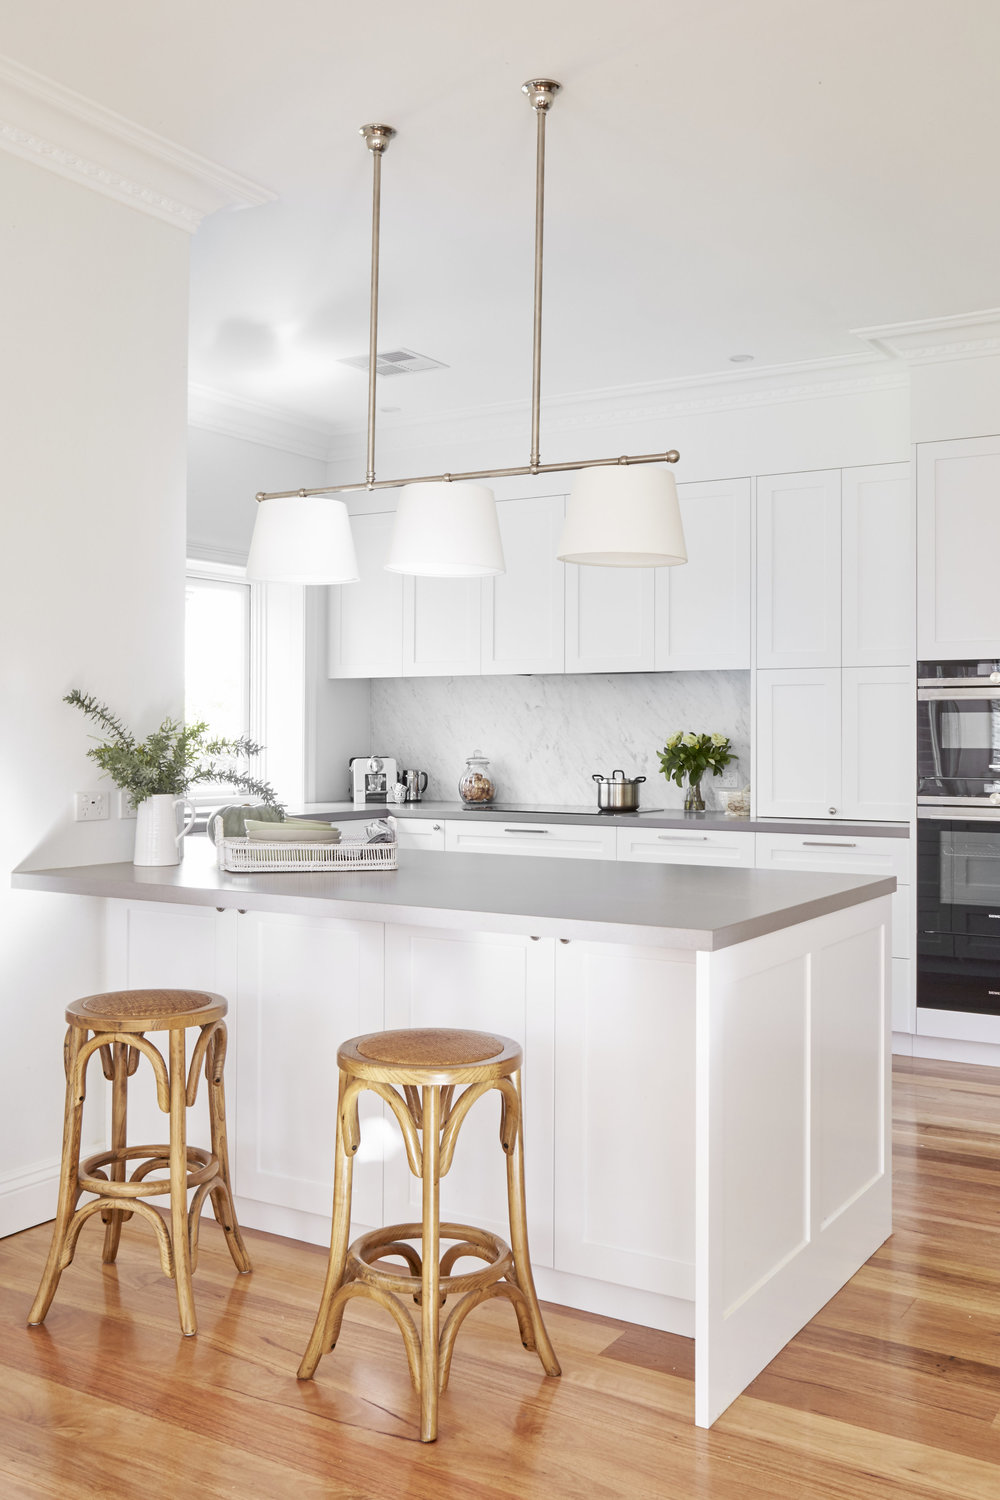 The Gloucester 3 Light featured in a kitchen designed by Sally Rhys Jones